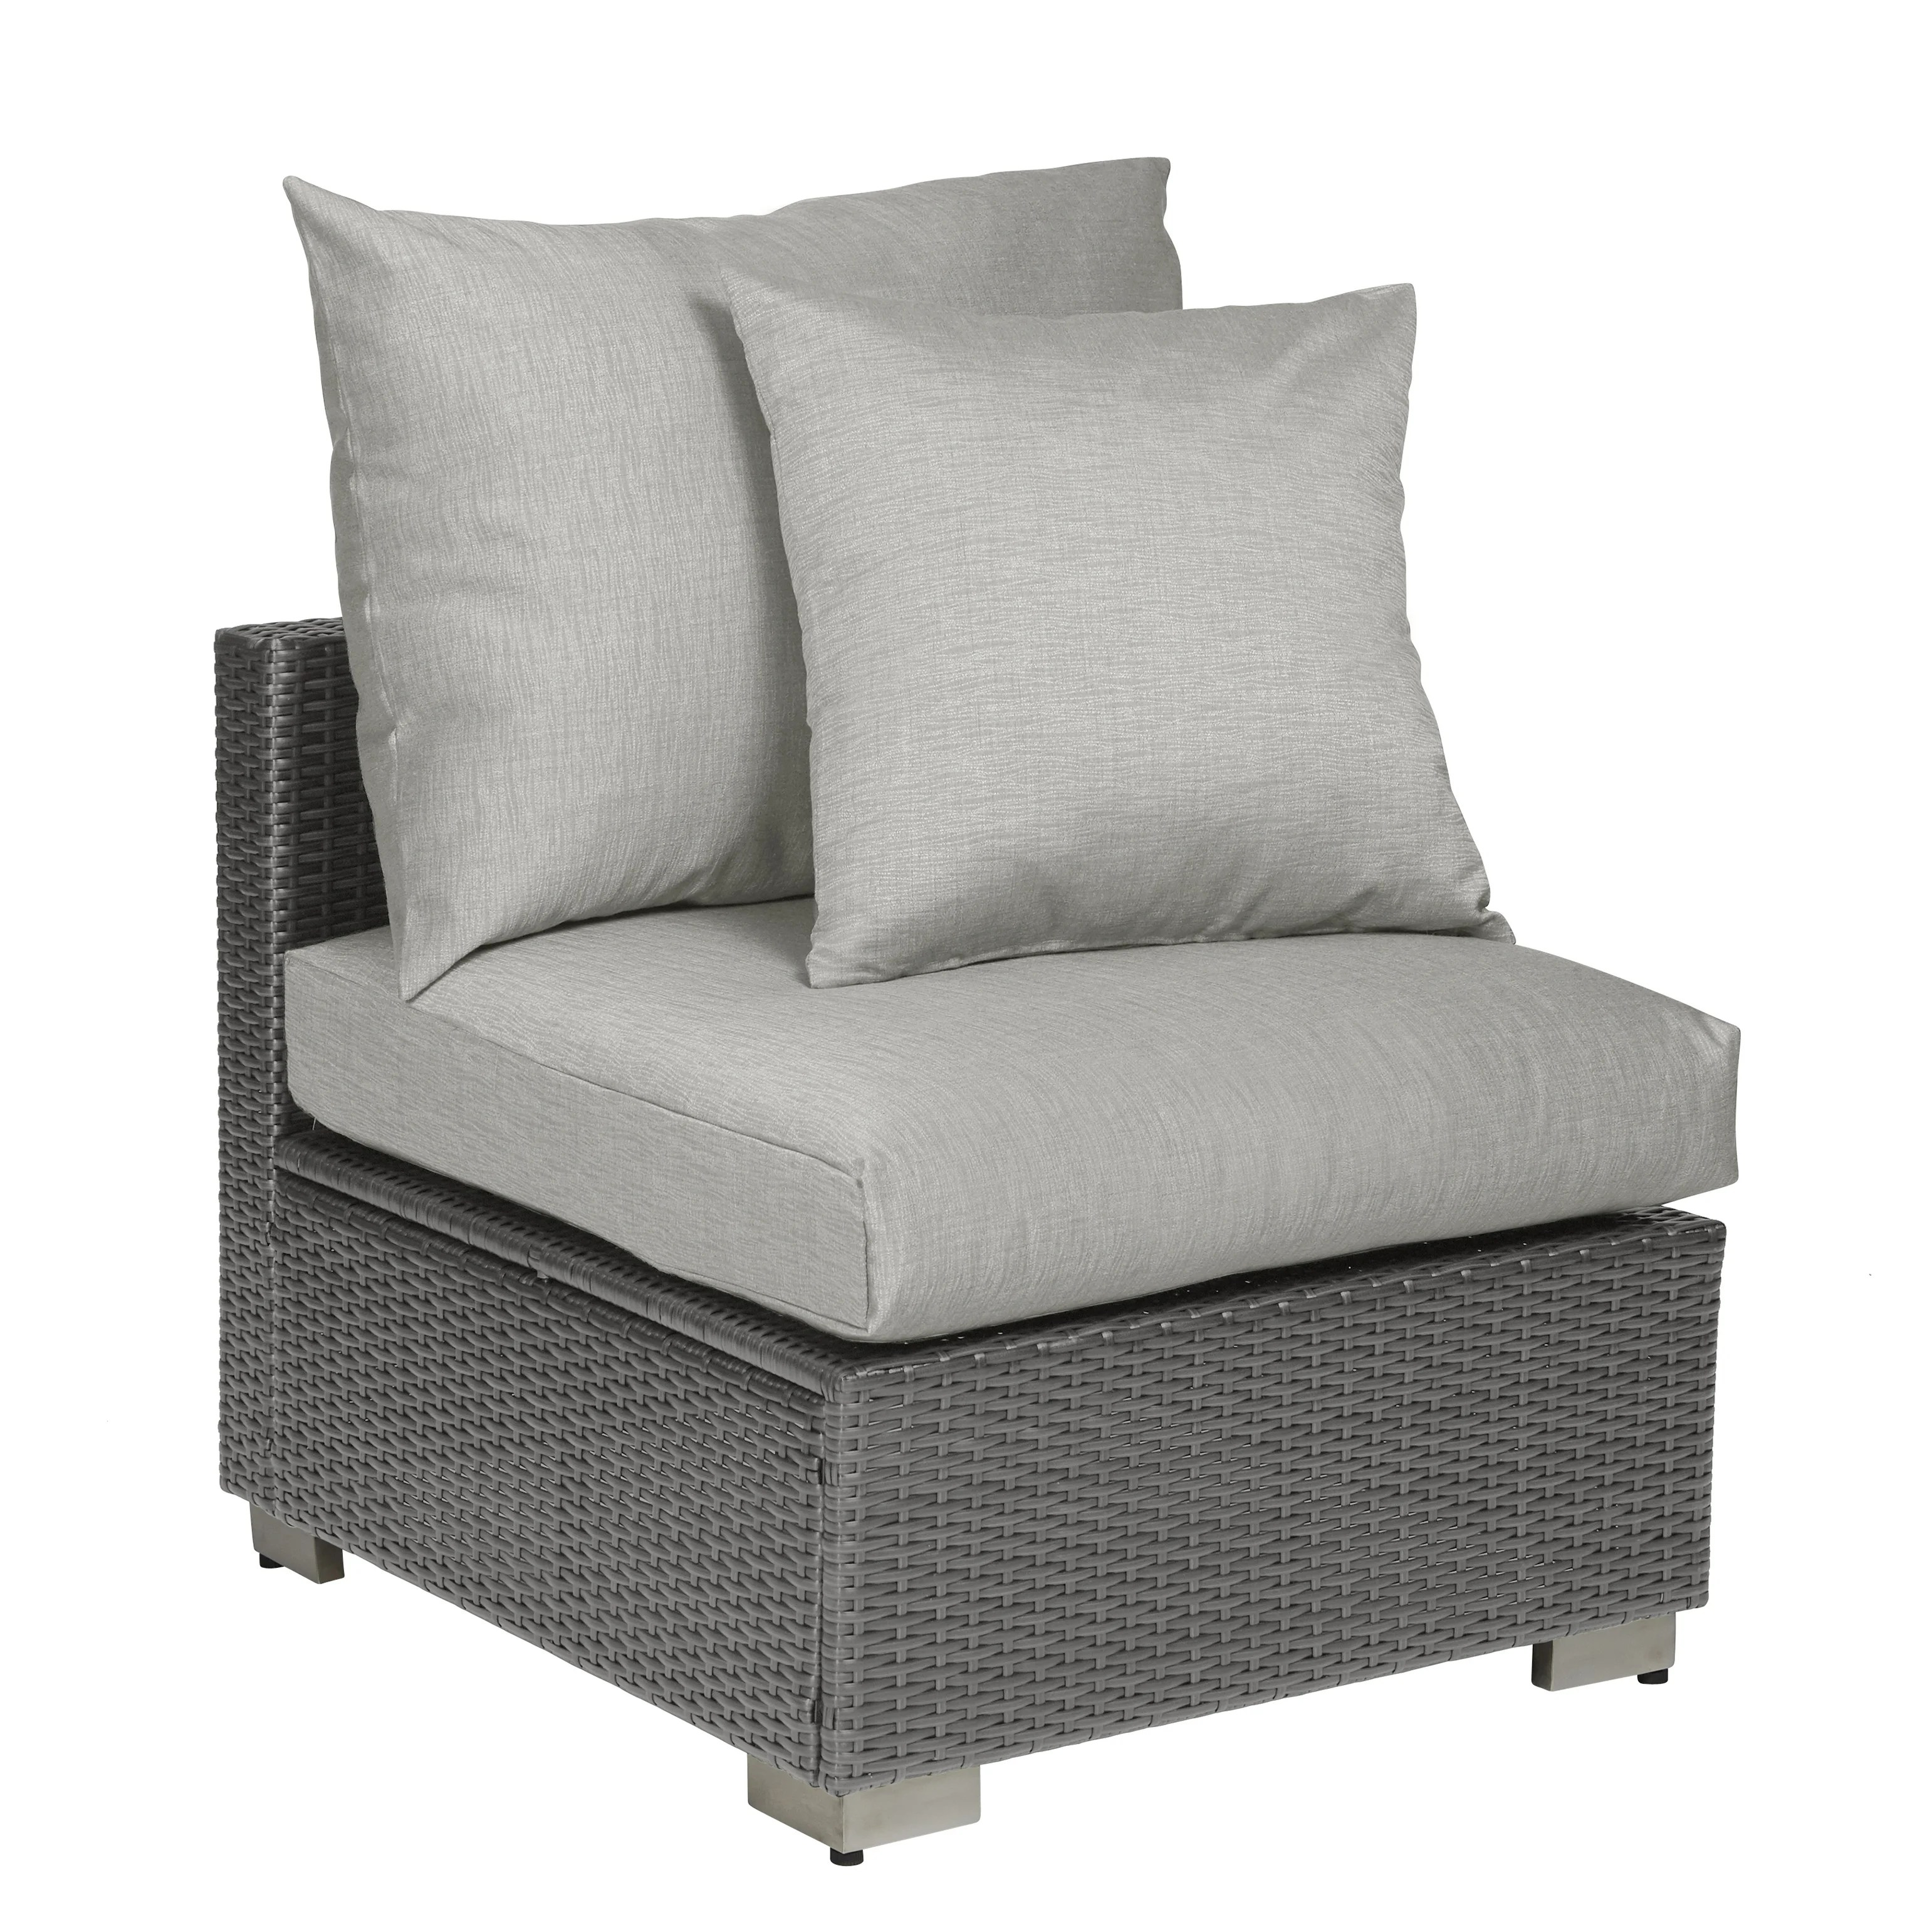 Open Weave Rattan Sofa Mid Century Buy Outdoor Sofas Chairs And Sectionals Online At Overstock